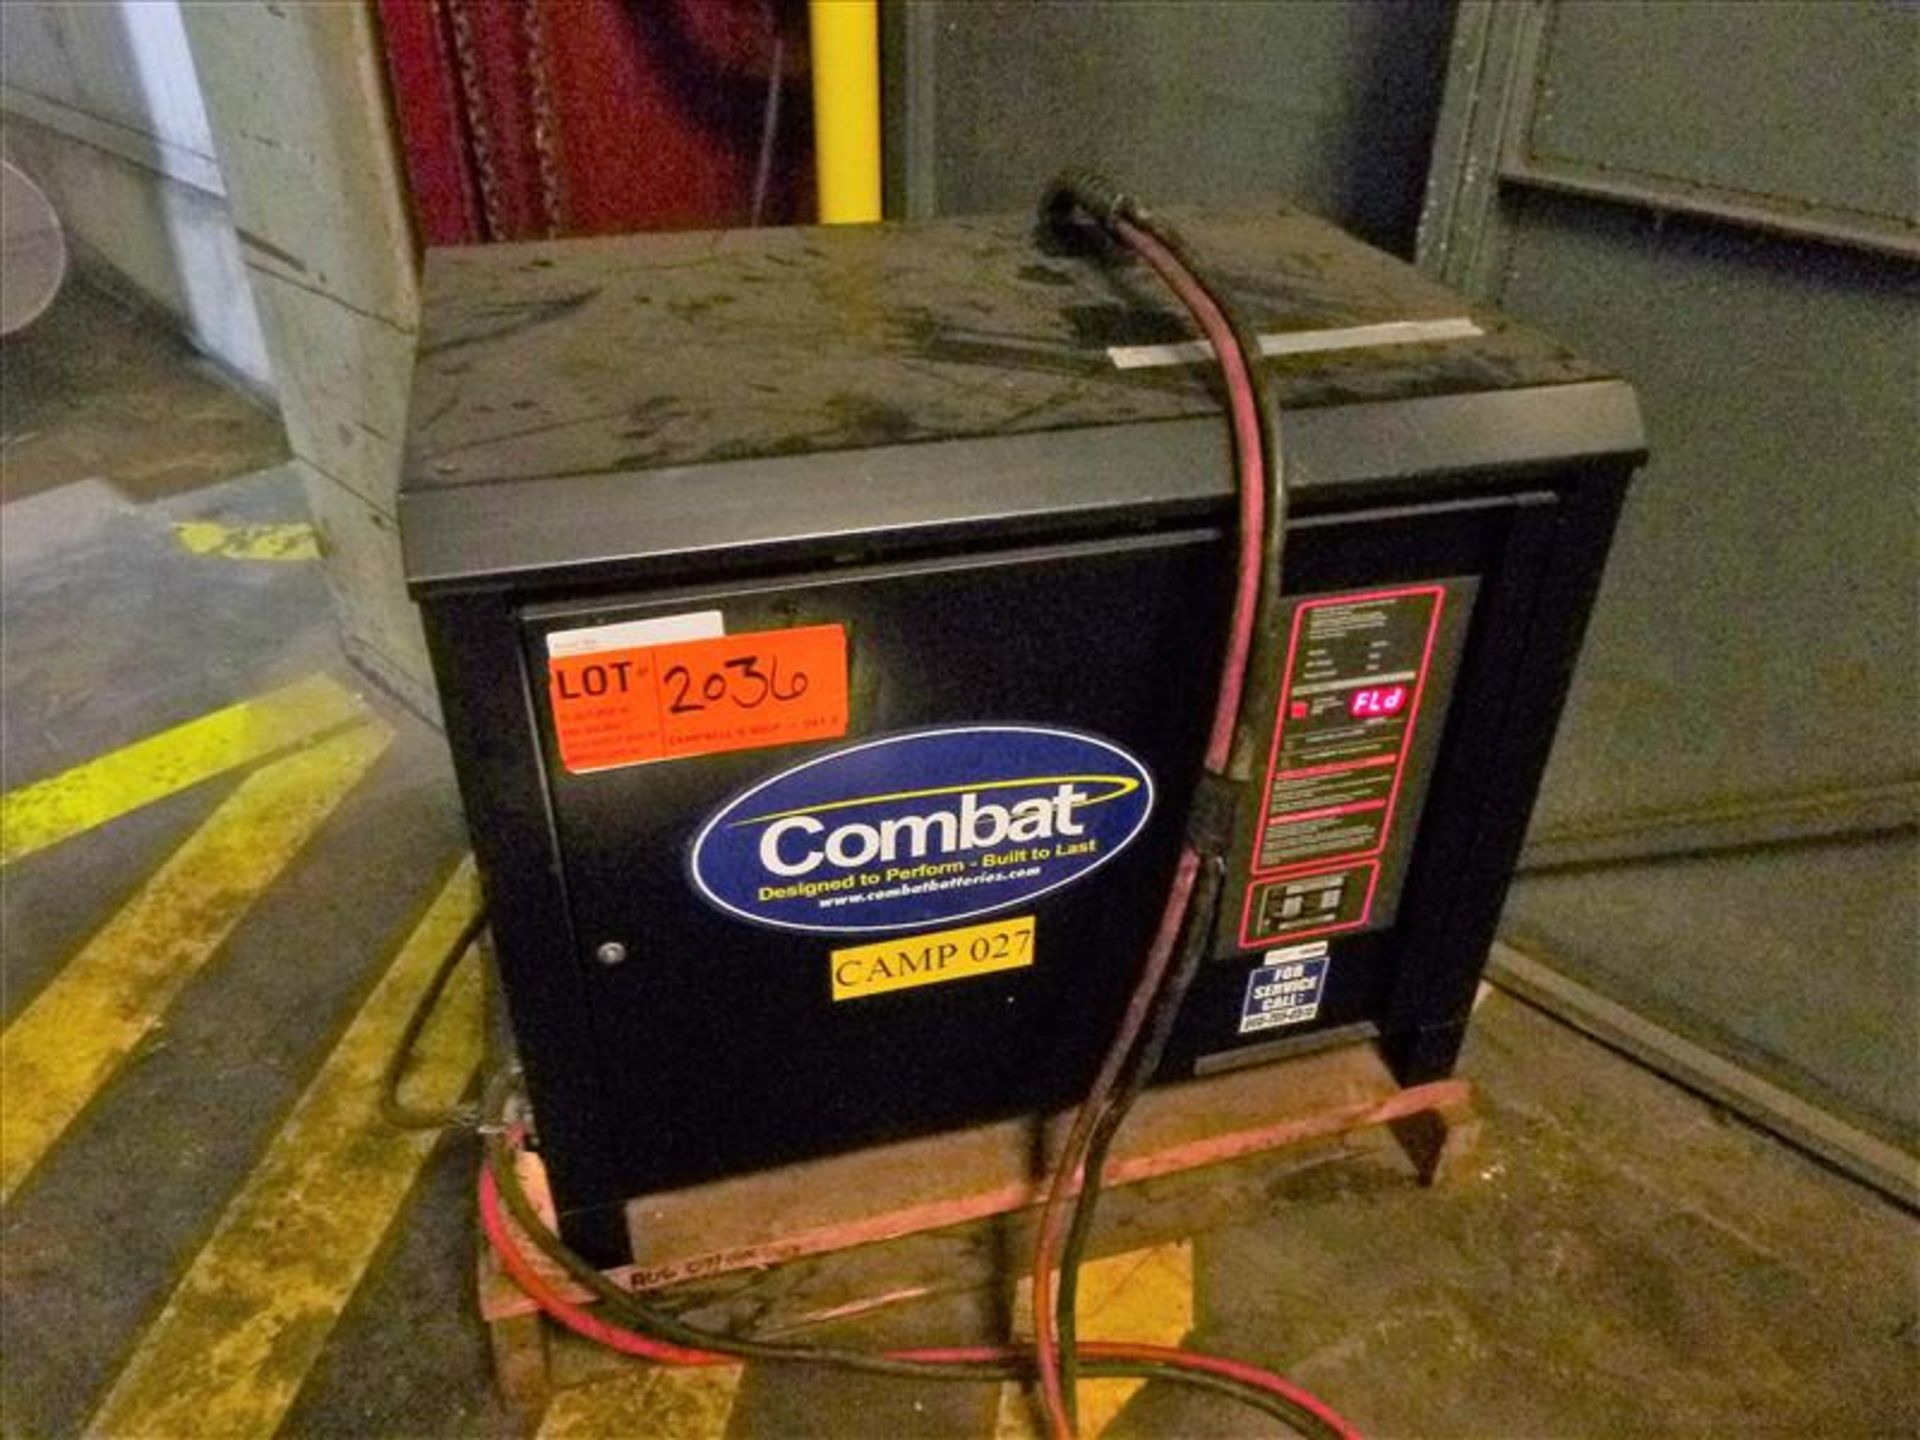 Lot 2036 - Combat battery charger, 48V [Material Handling]